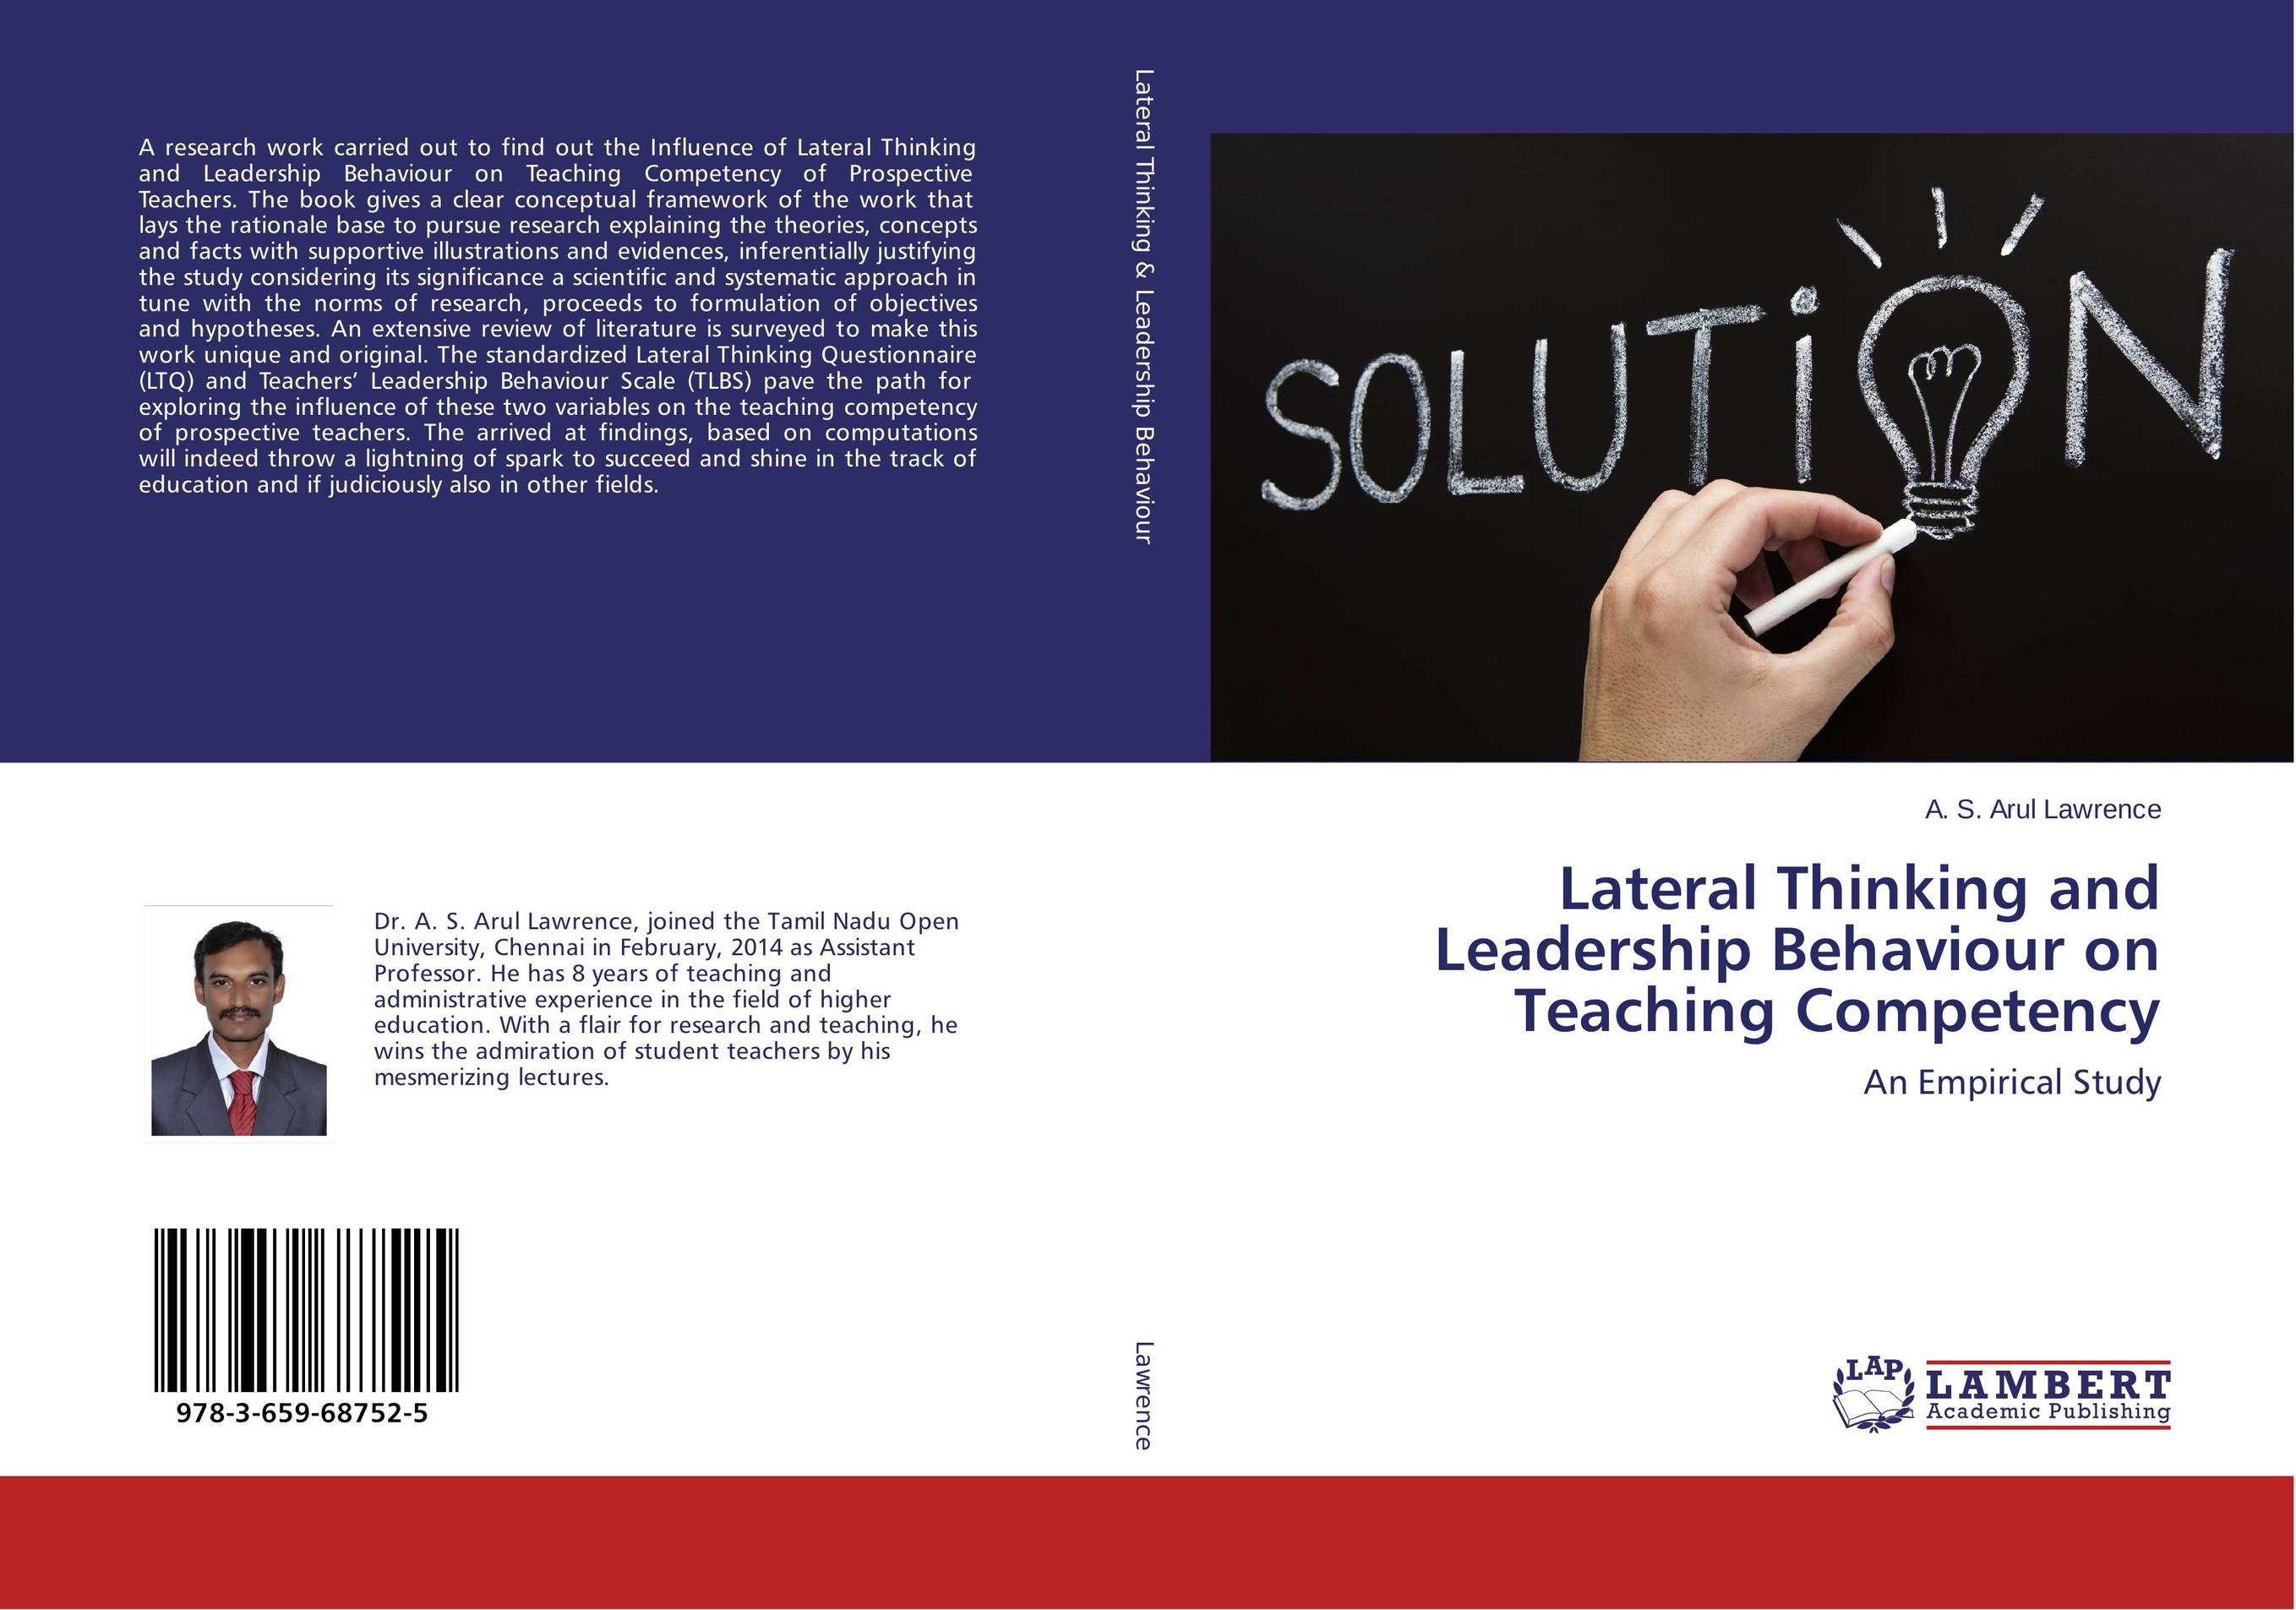 Lateral Thinking and Leadership Behaviour on Teaching Competency thinking about leadership